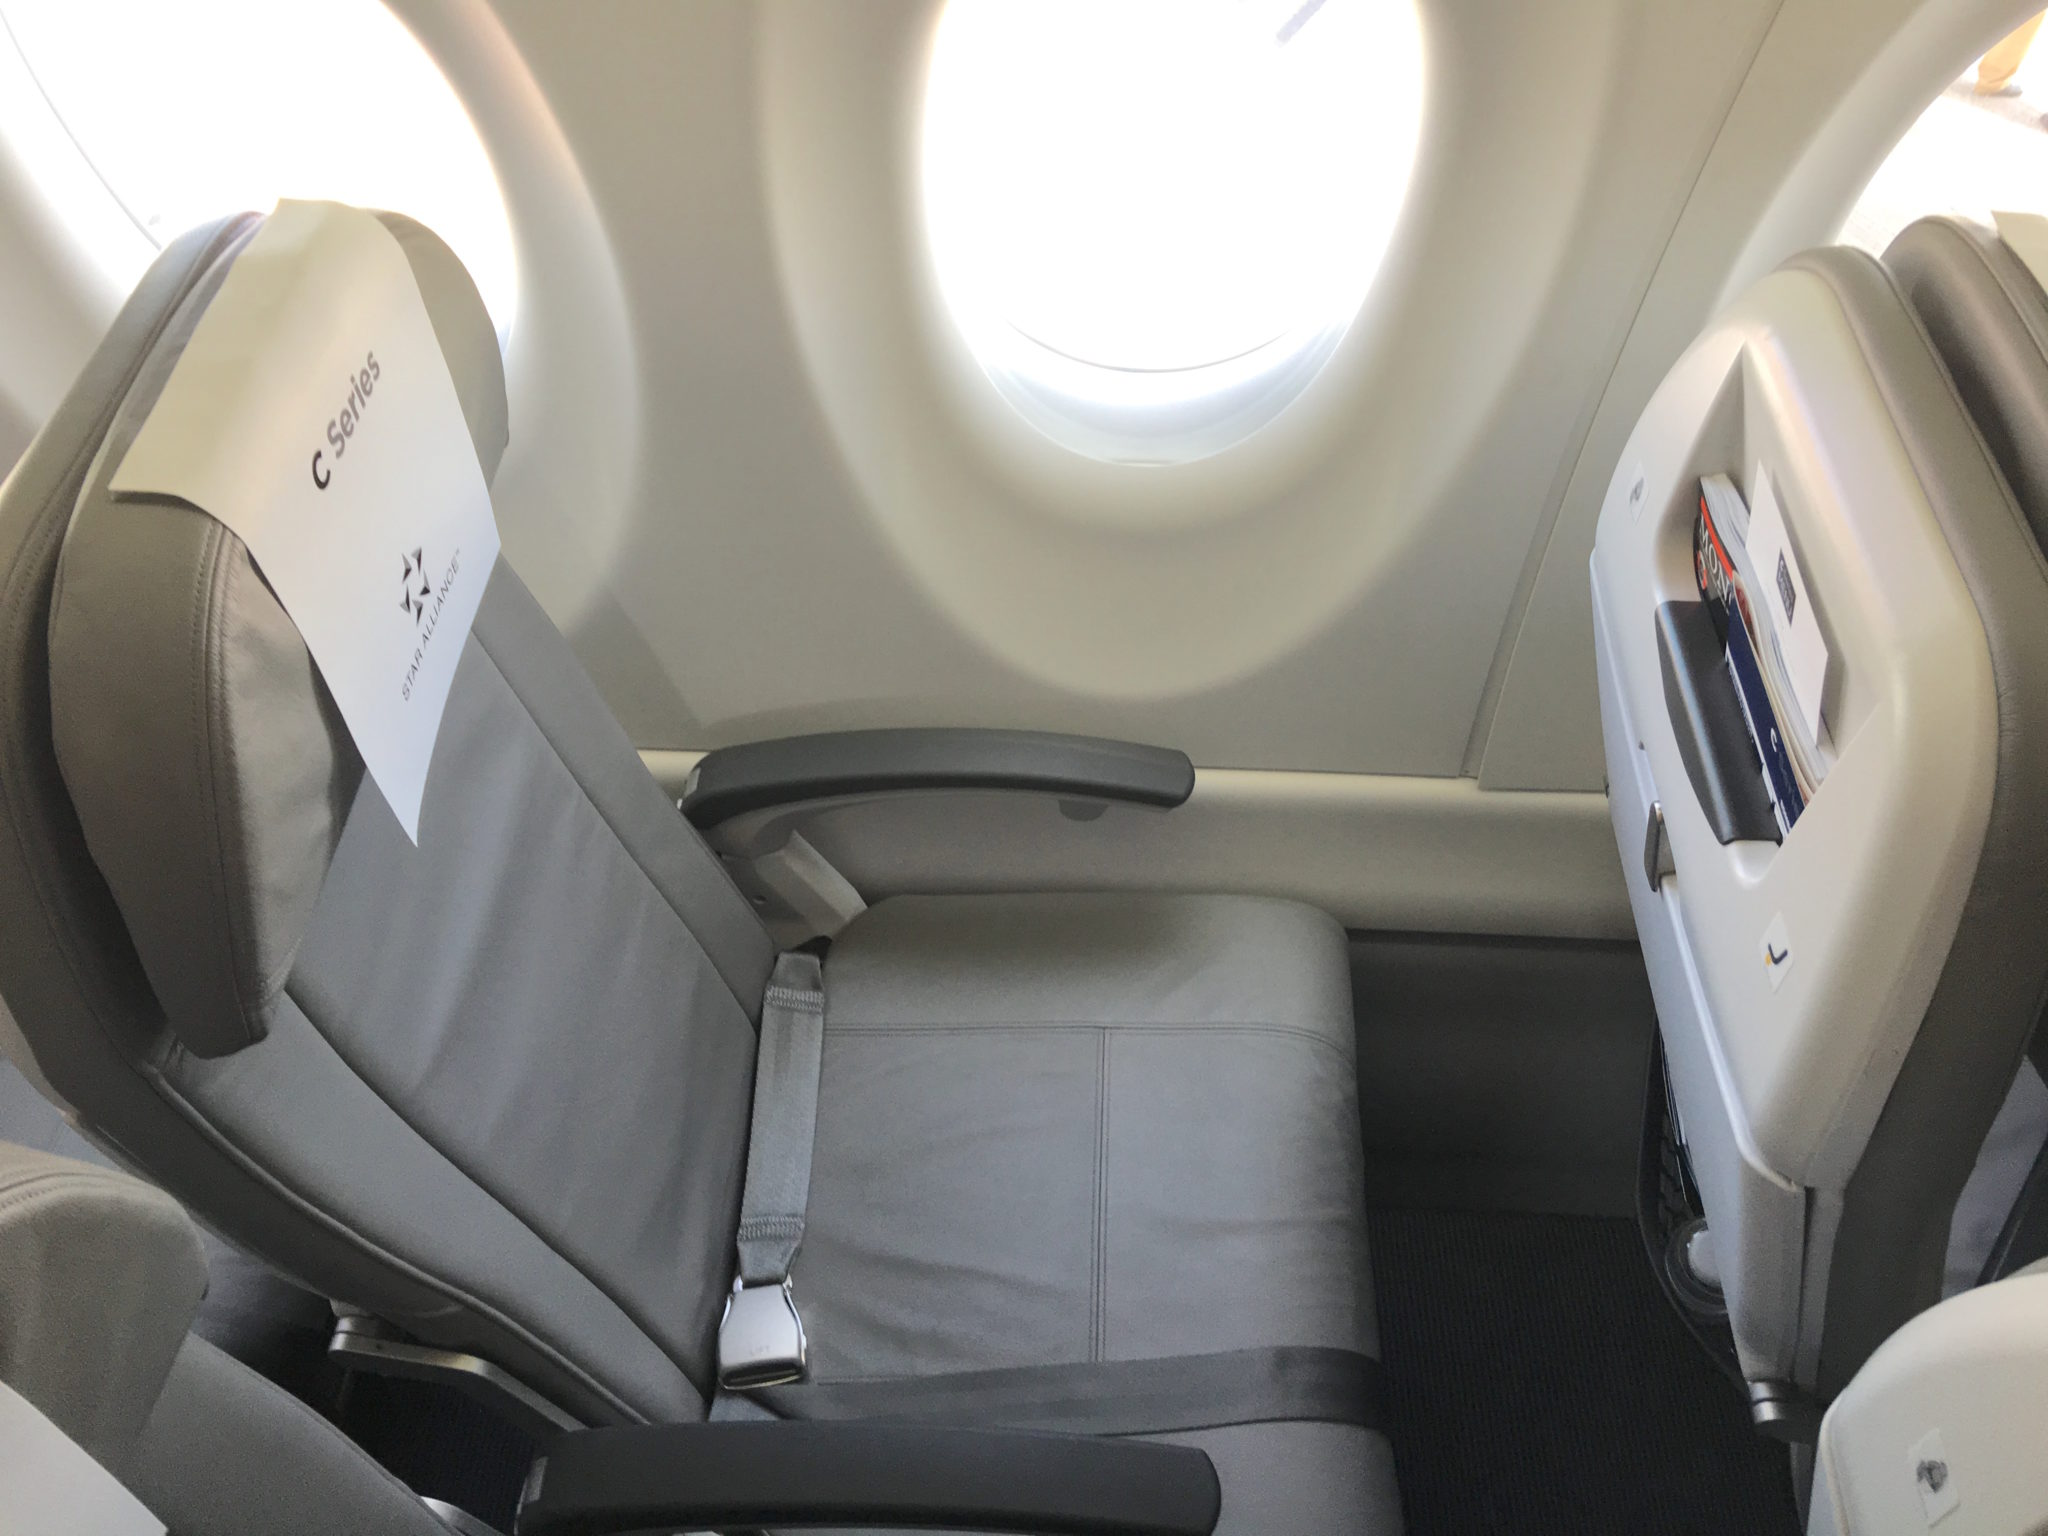 The CSeries' wide seats won't mean that Swiss feels it necessary to add a seatmate on the port side in business. Image: John Walton